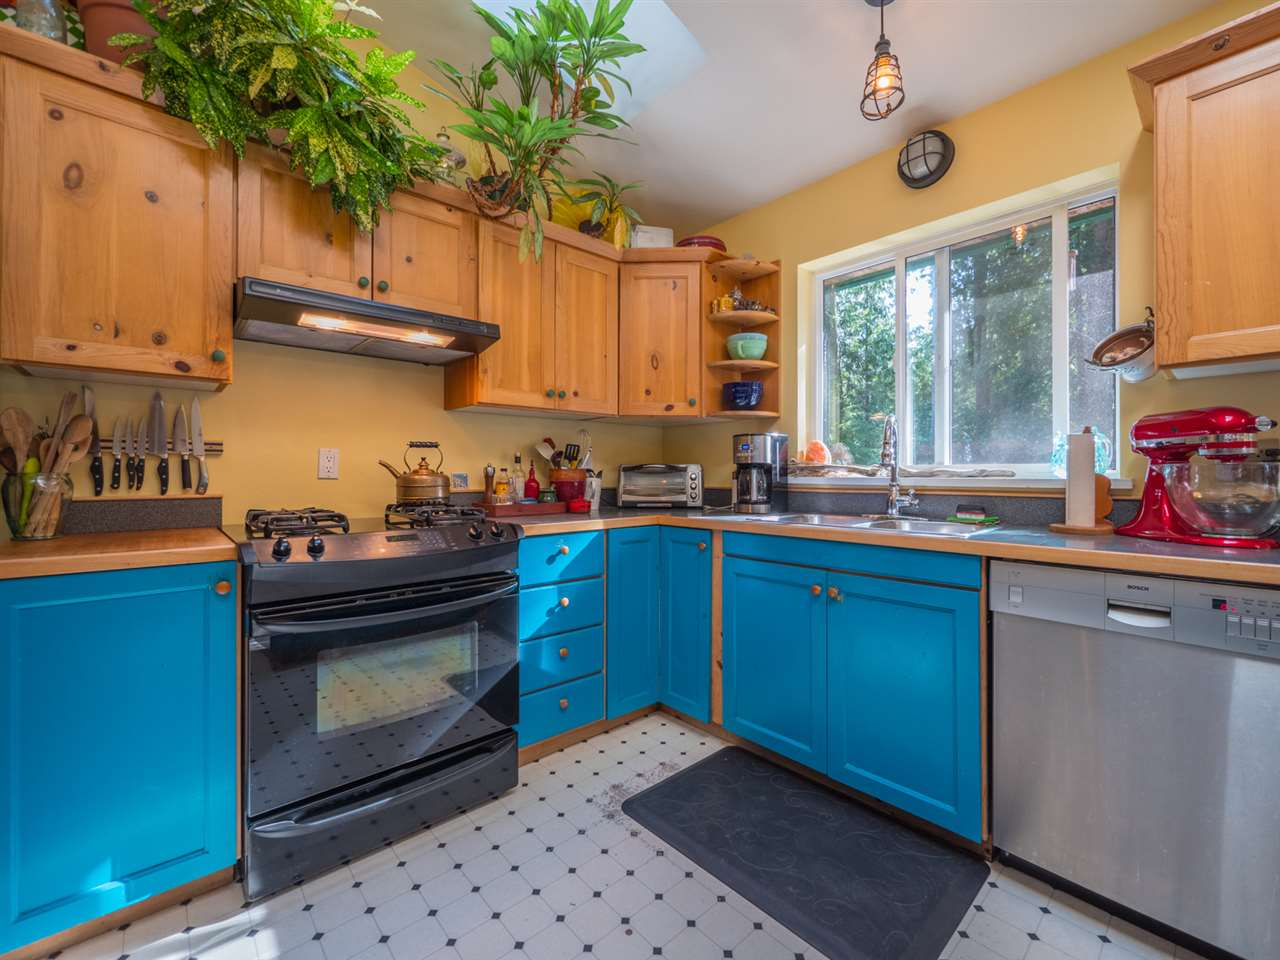 Photo 4: Photos: 1421 MARGARET Road: Roberts Creek House for sale (Sunshine Coast)  : MLS® # R2243186